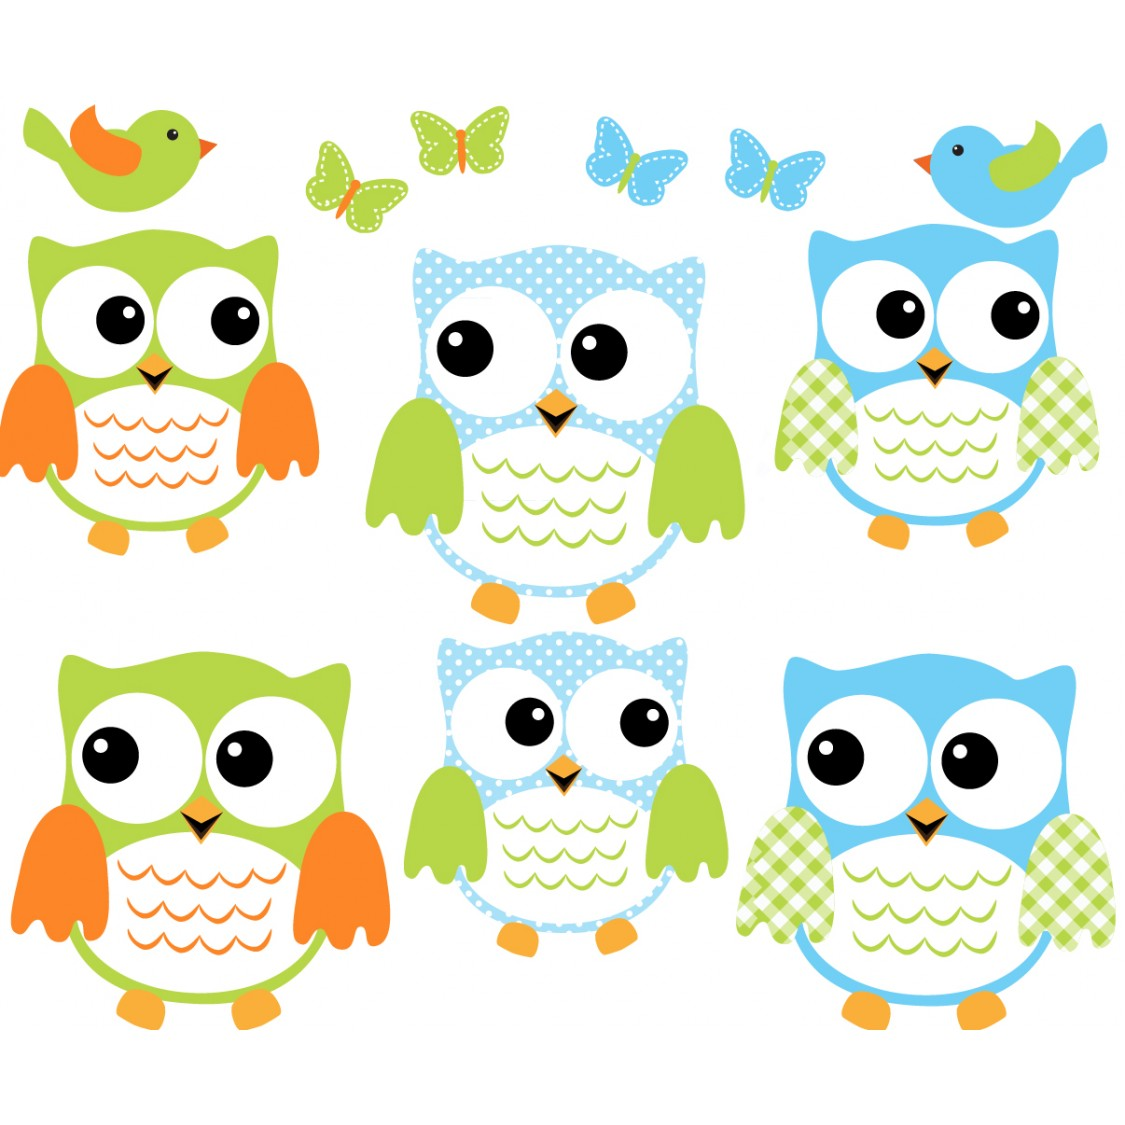 Essay on owl bird for kids